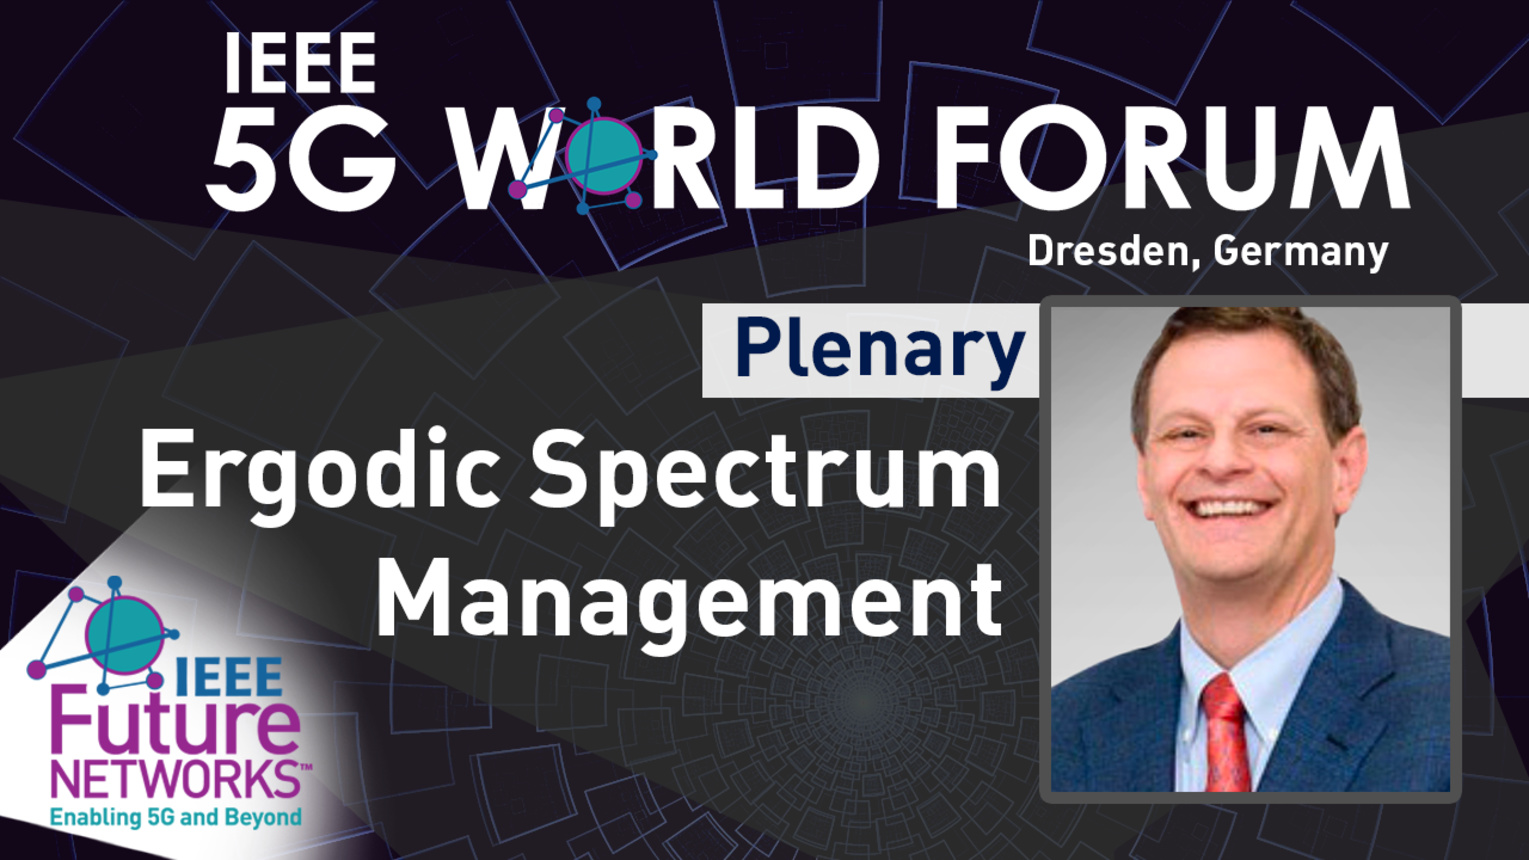 Ergodic Spectrum Management - Keynote John Cioffi - 5G World Forum Dresden, 2019